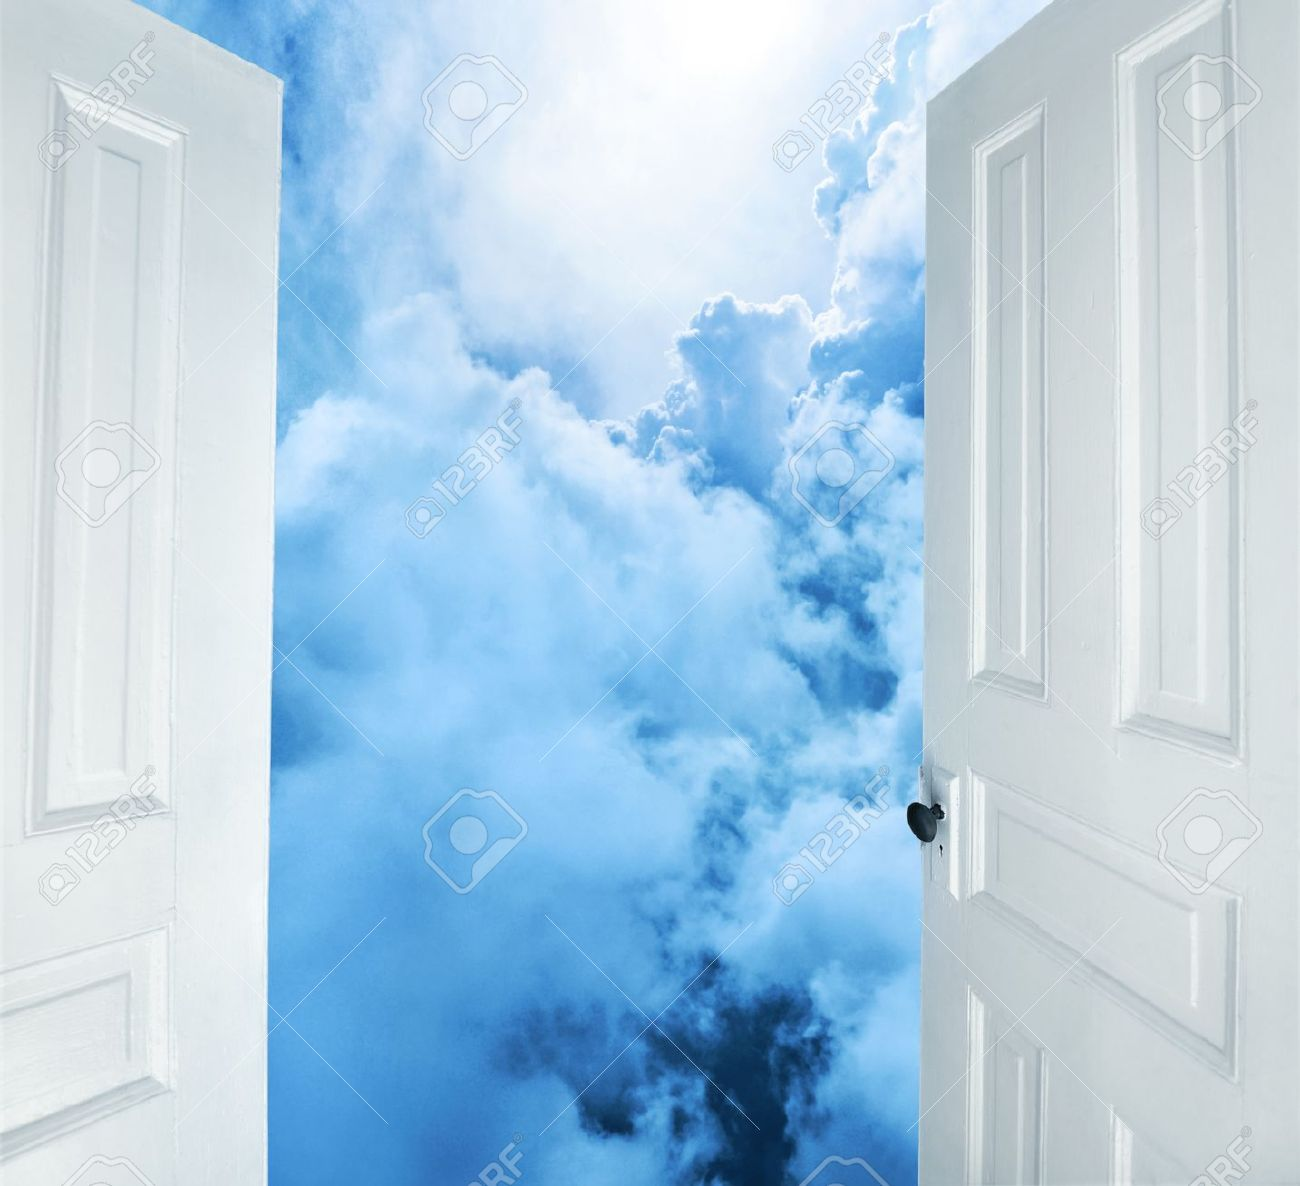 Image Size Testing 9339607-white-doors-opening-to-dreams-and-success-stock-photo-doors-open-door